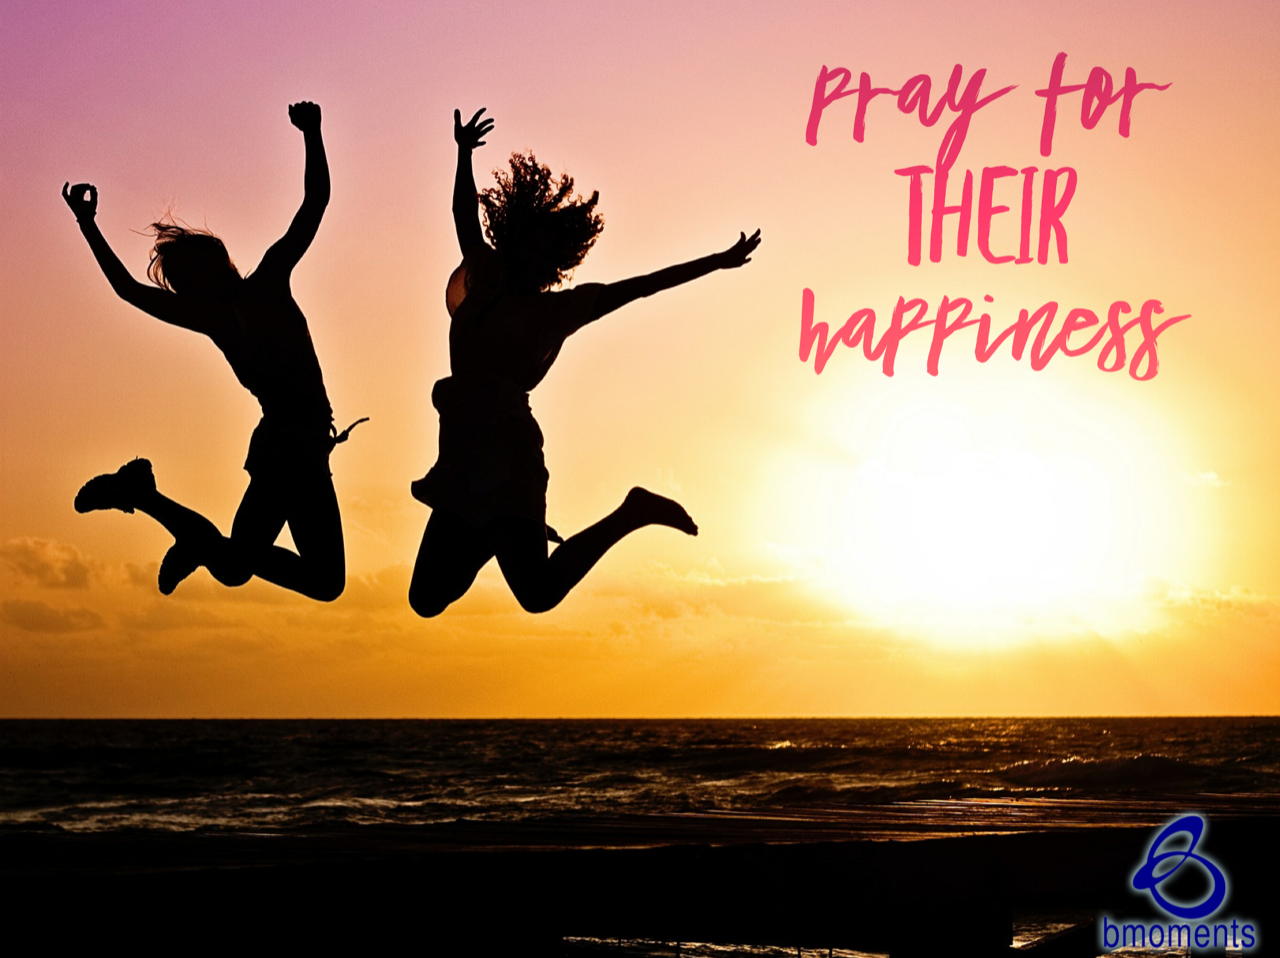 Pray for the Happiness of Those Who Harm You